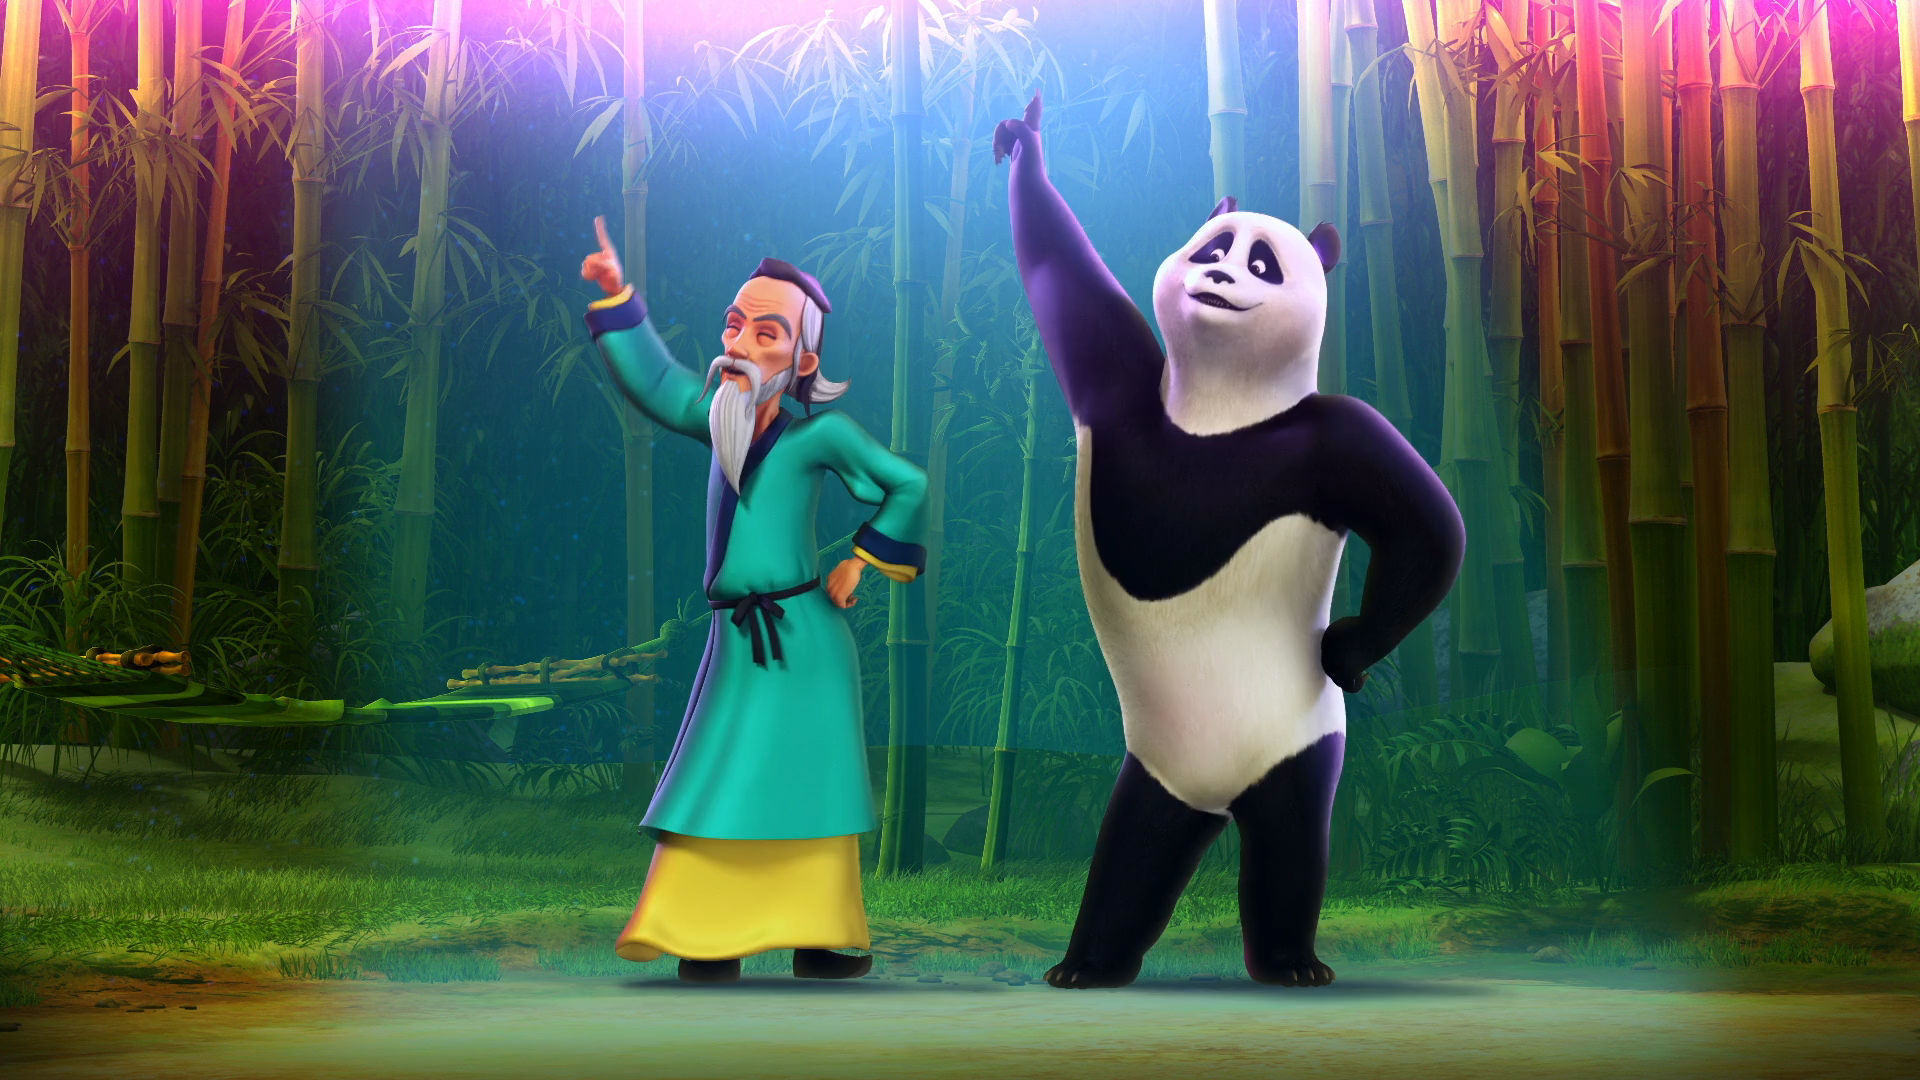 This Panda Just Wants to Dance